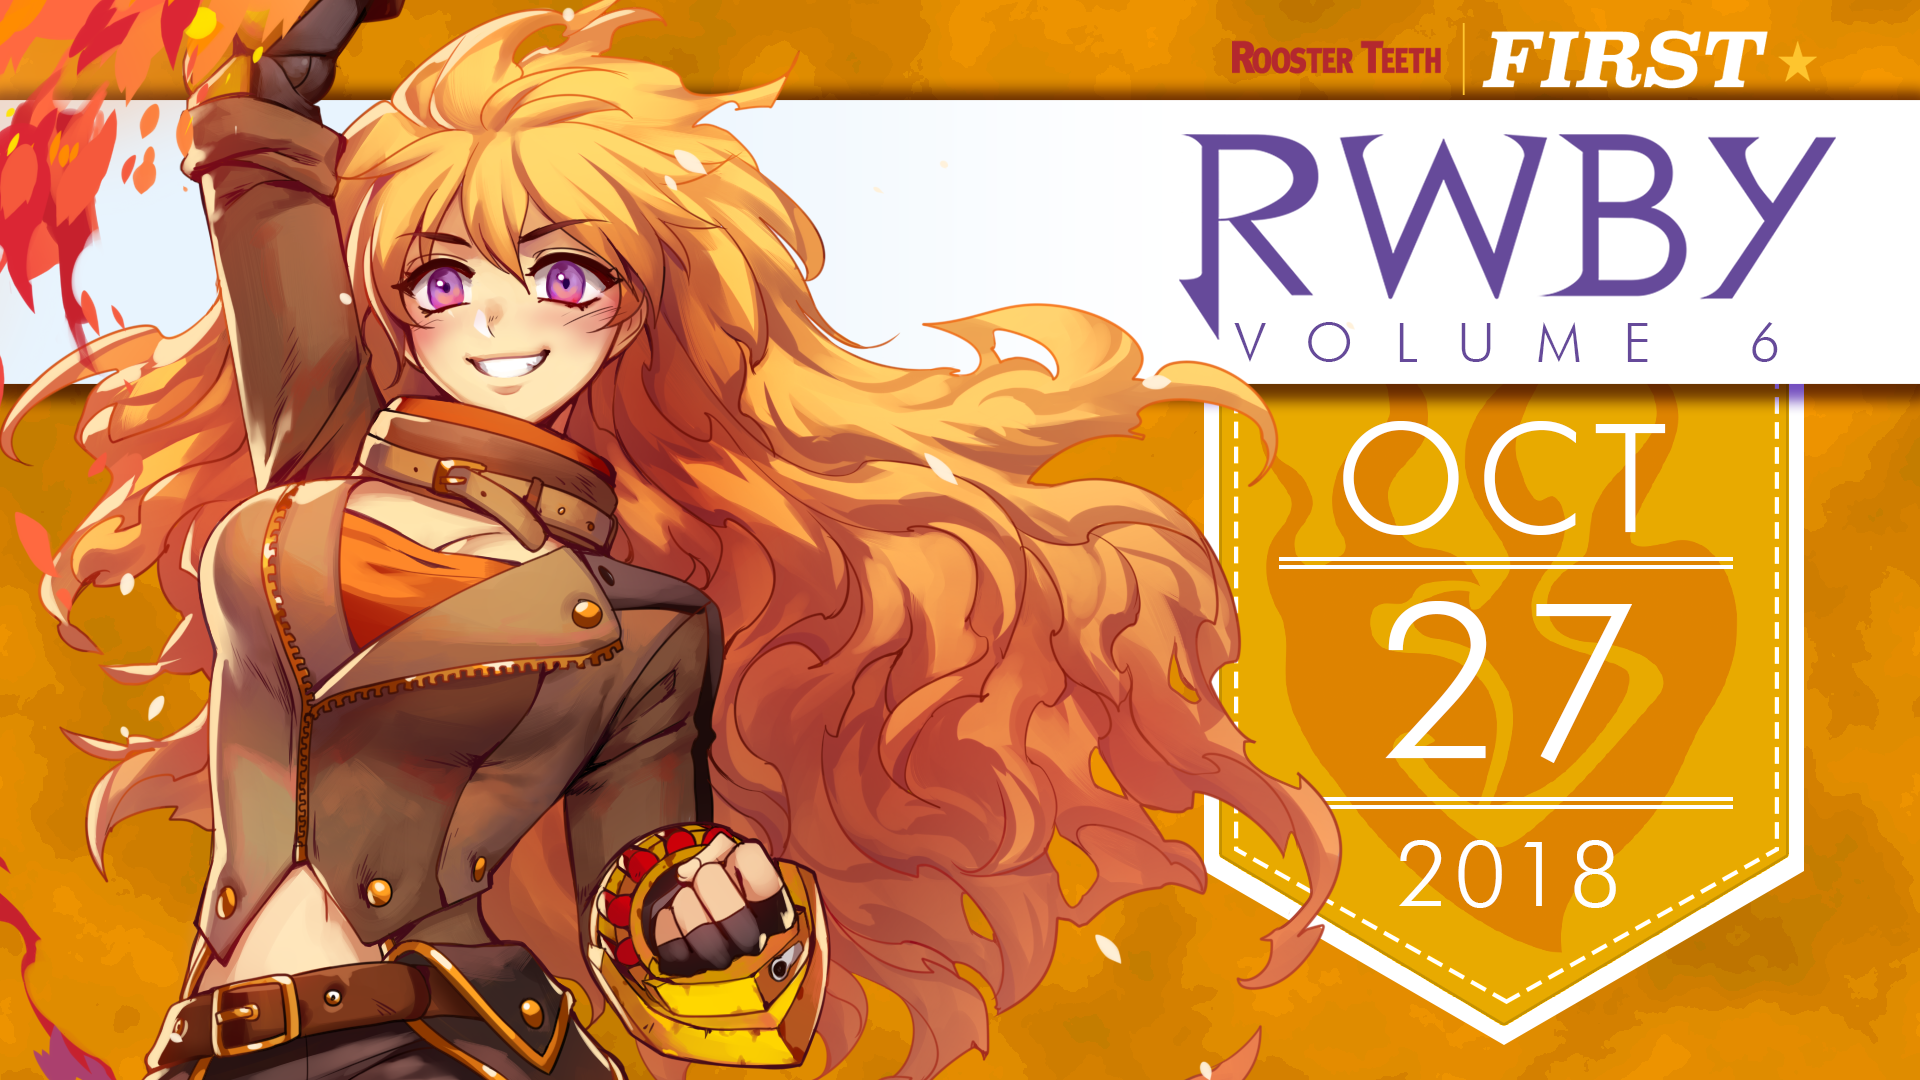 RTX AUSTIN 2018 NEWS ROUNDUP: RWBY VOLUME 6 PREMIERE, RWBY YA SERIES and gen:LOCK voice cast 3